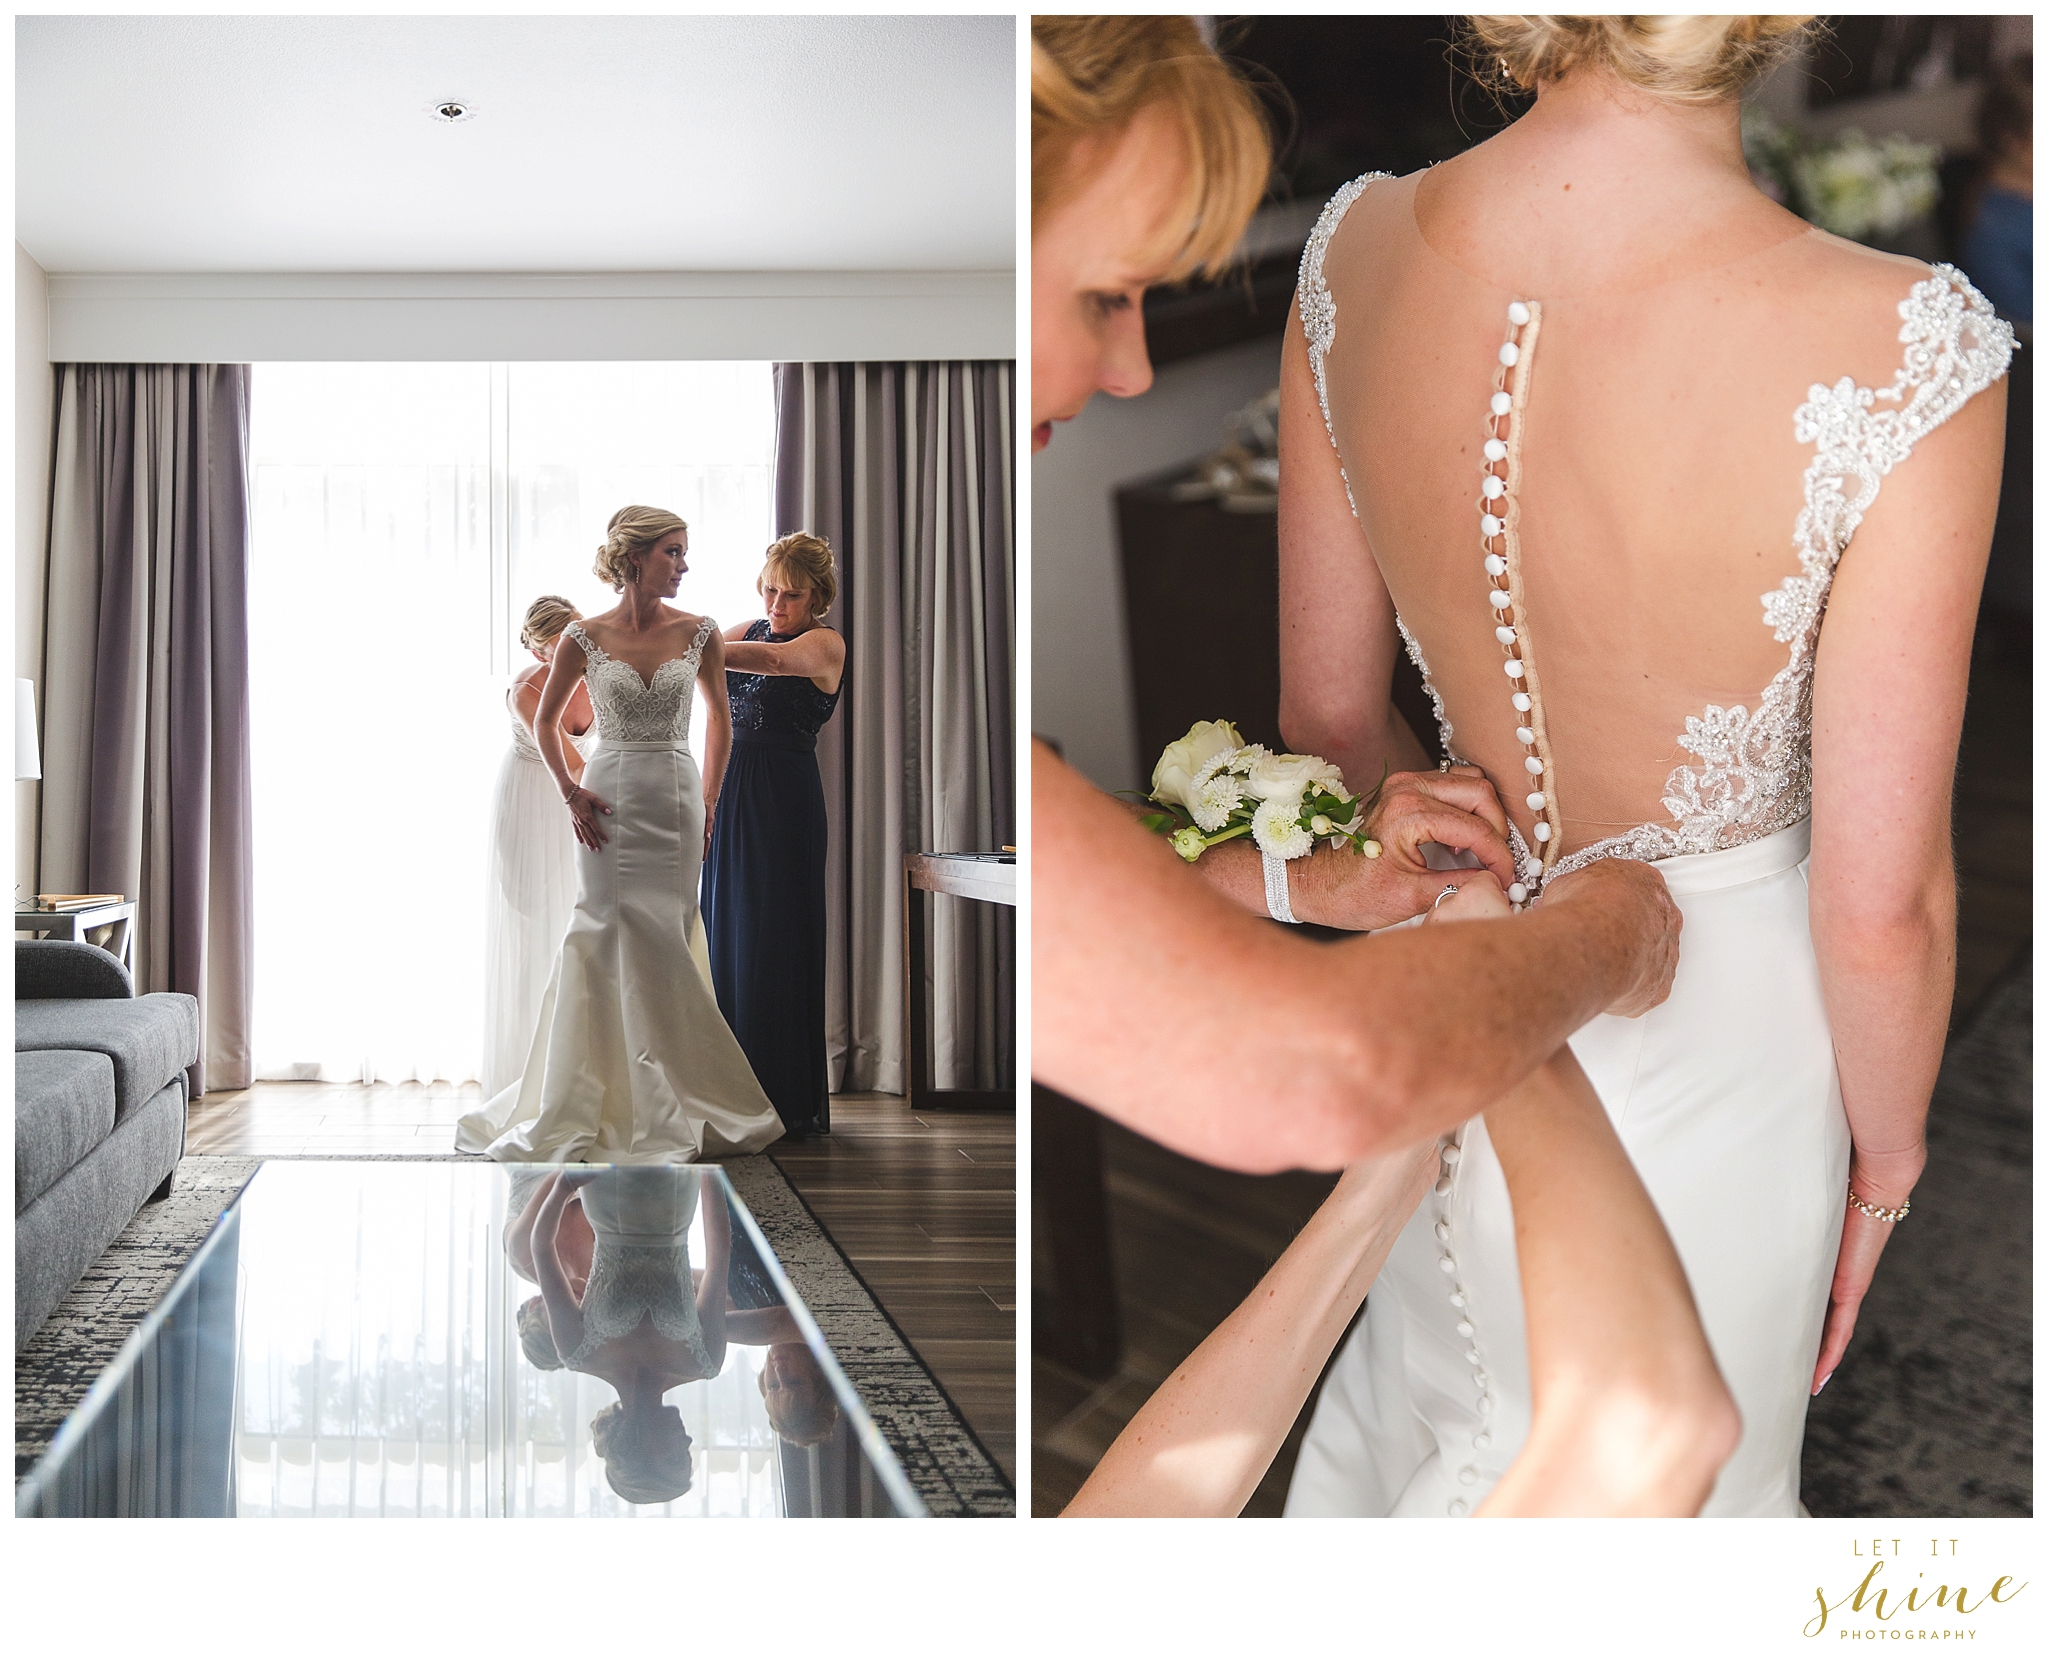 The Grove Hotel Boise Wedding 2017 Let it Shine Photography-8314.jpg